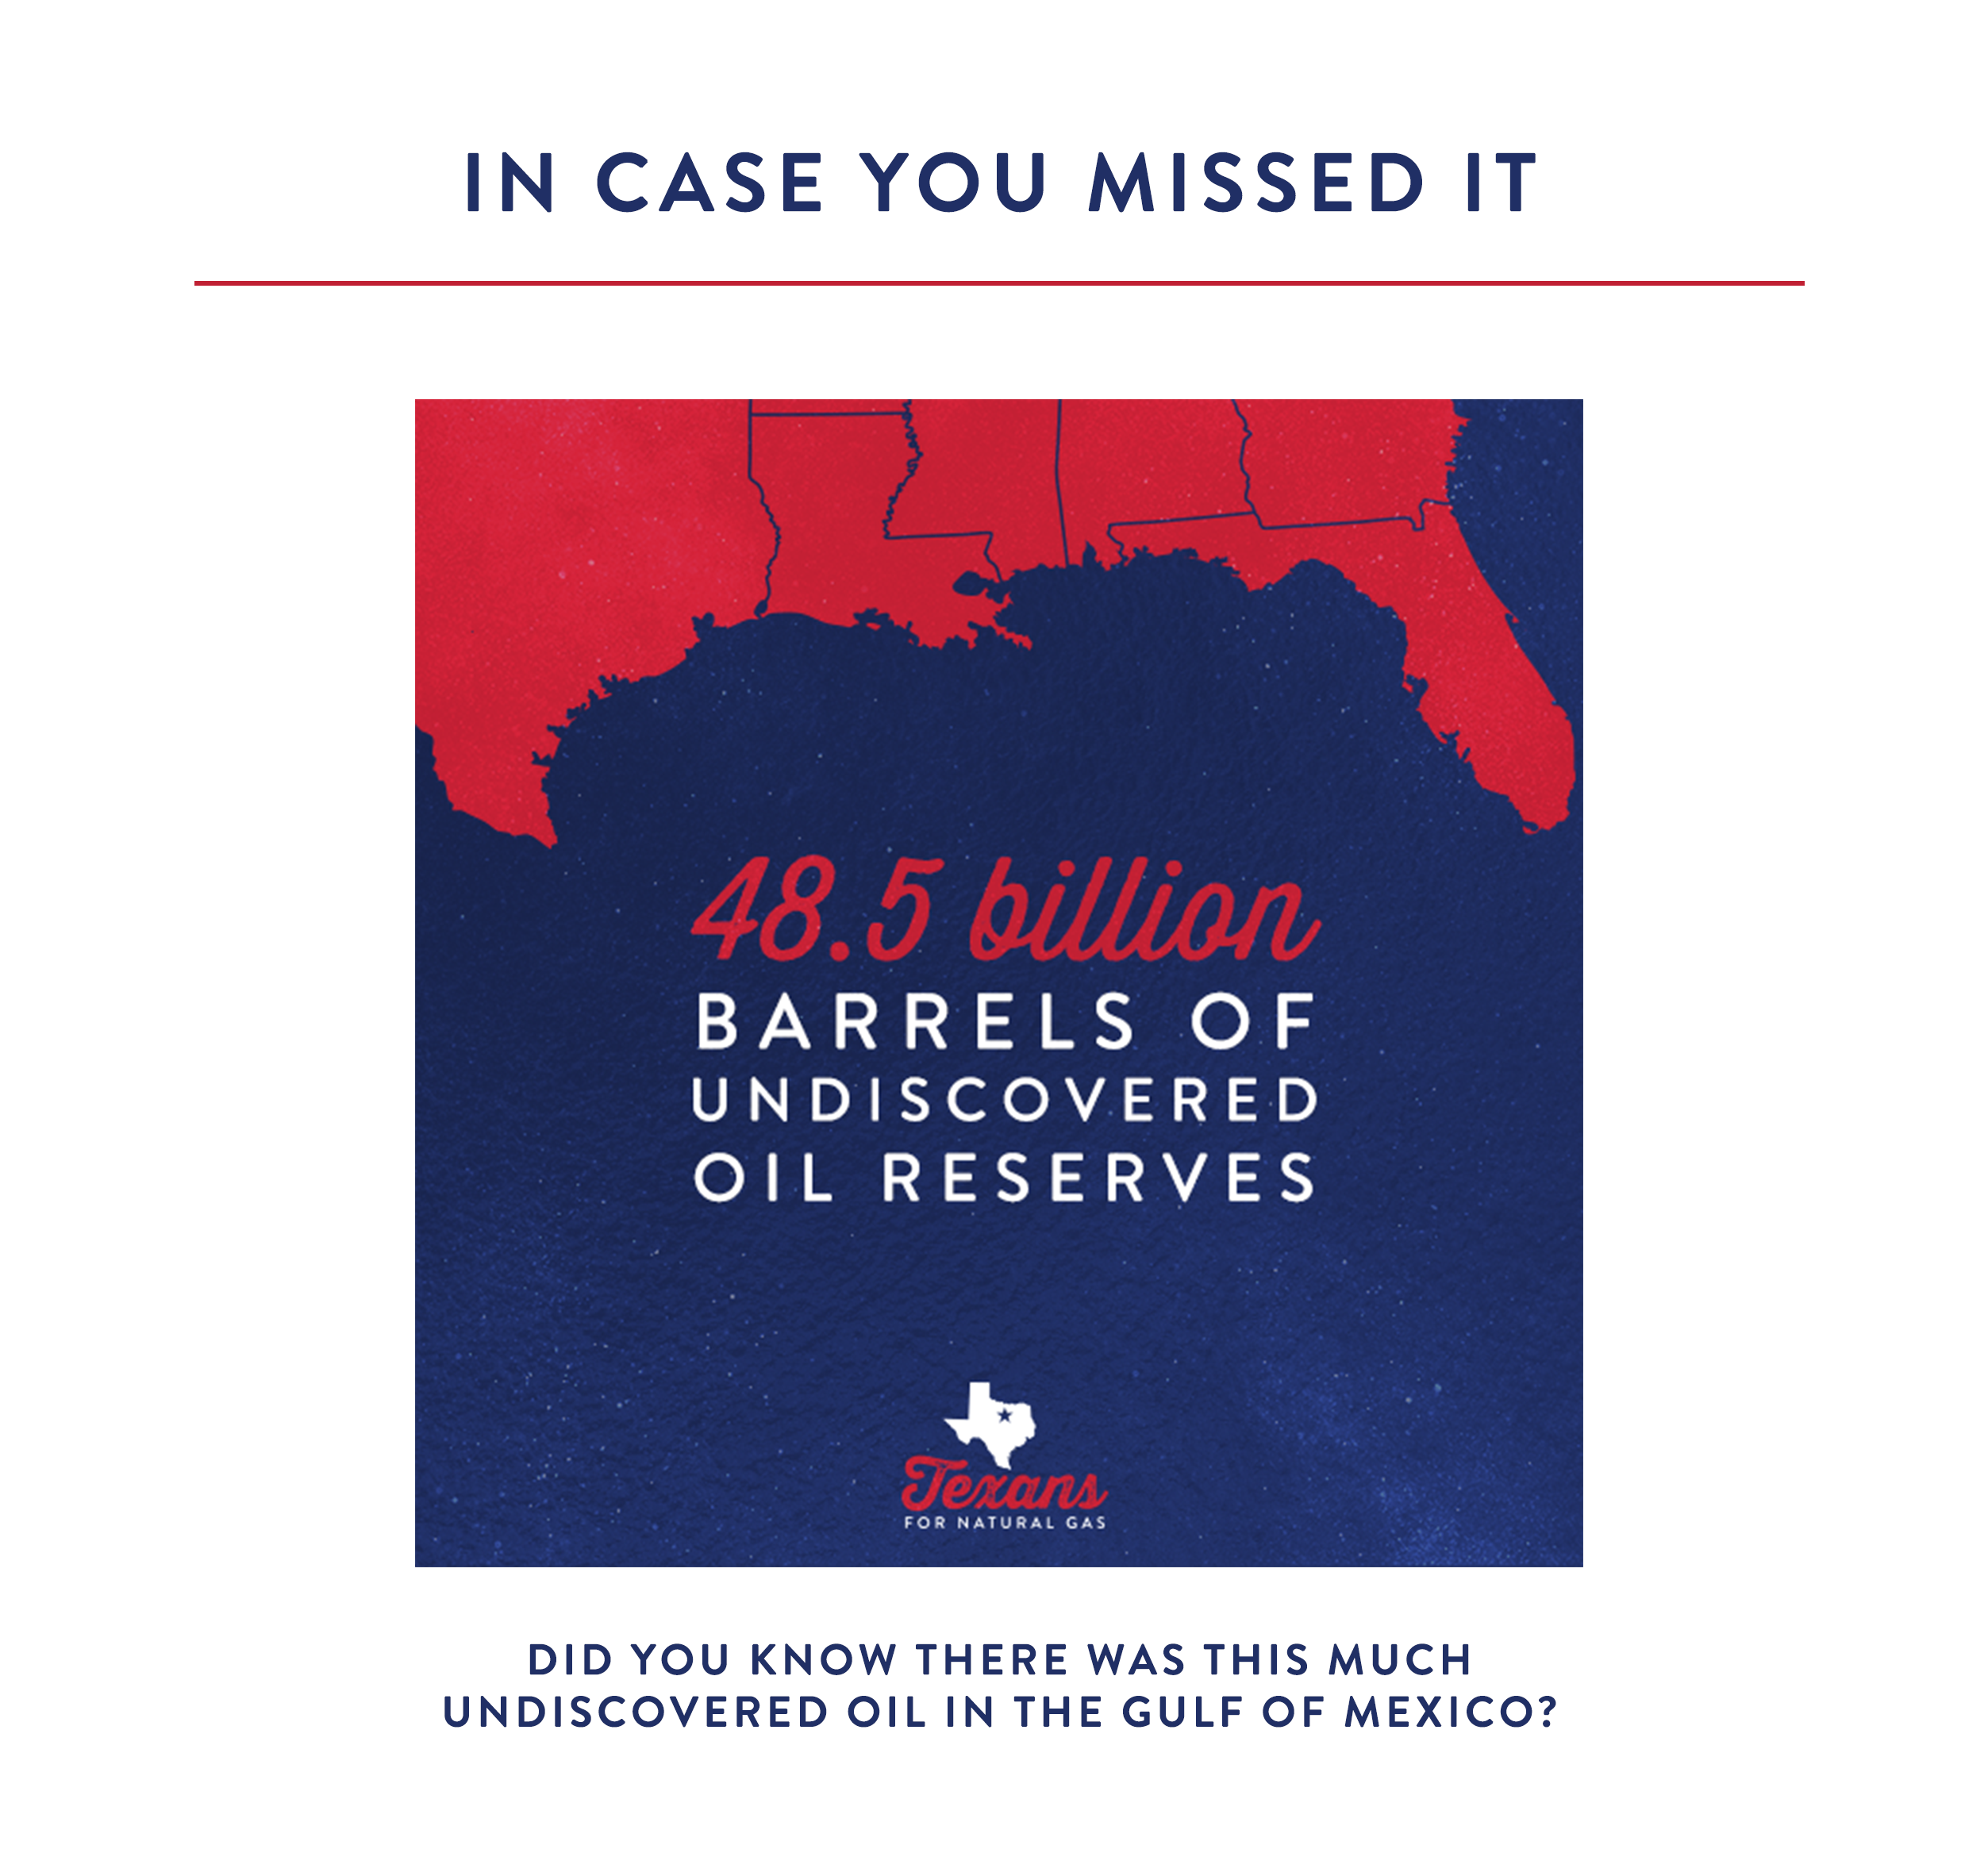 It's estimated that there are 48.5 billion barrels of undiscovered oil in the Gulf Coast alone.